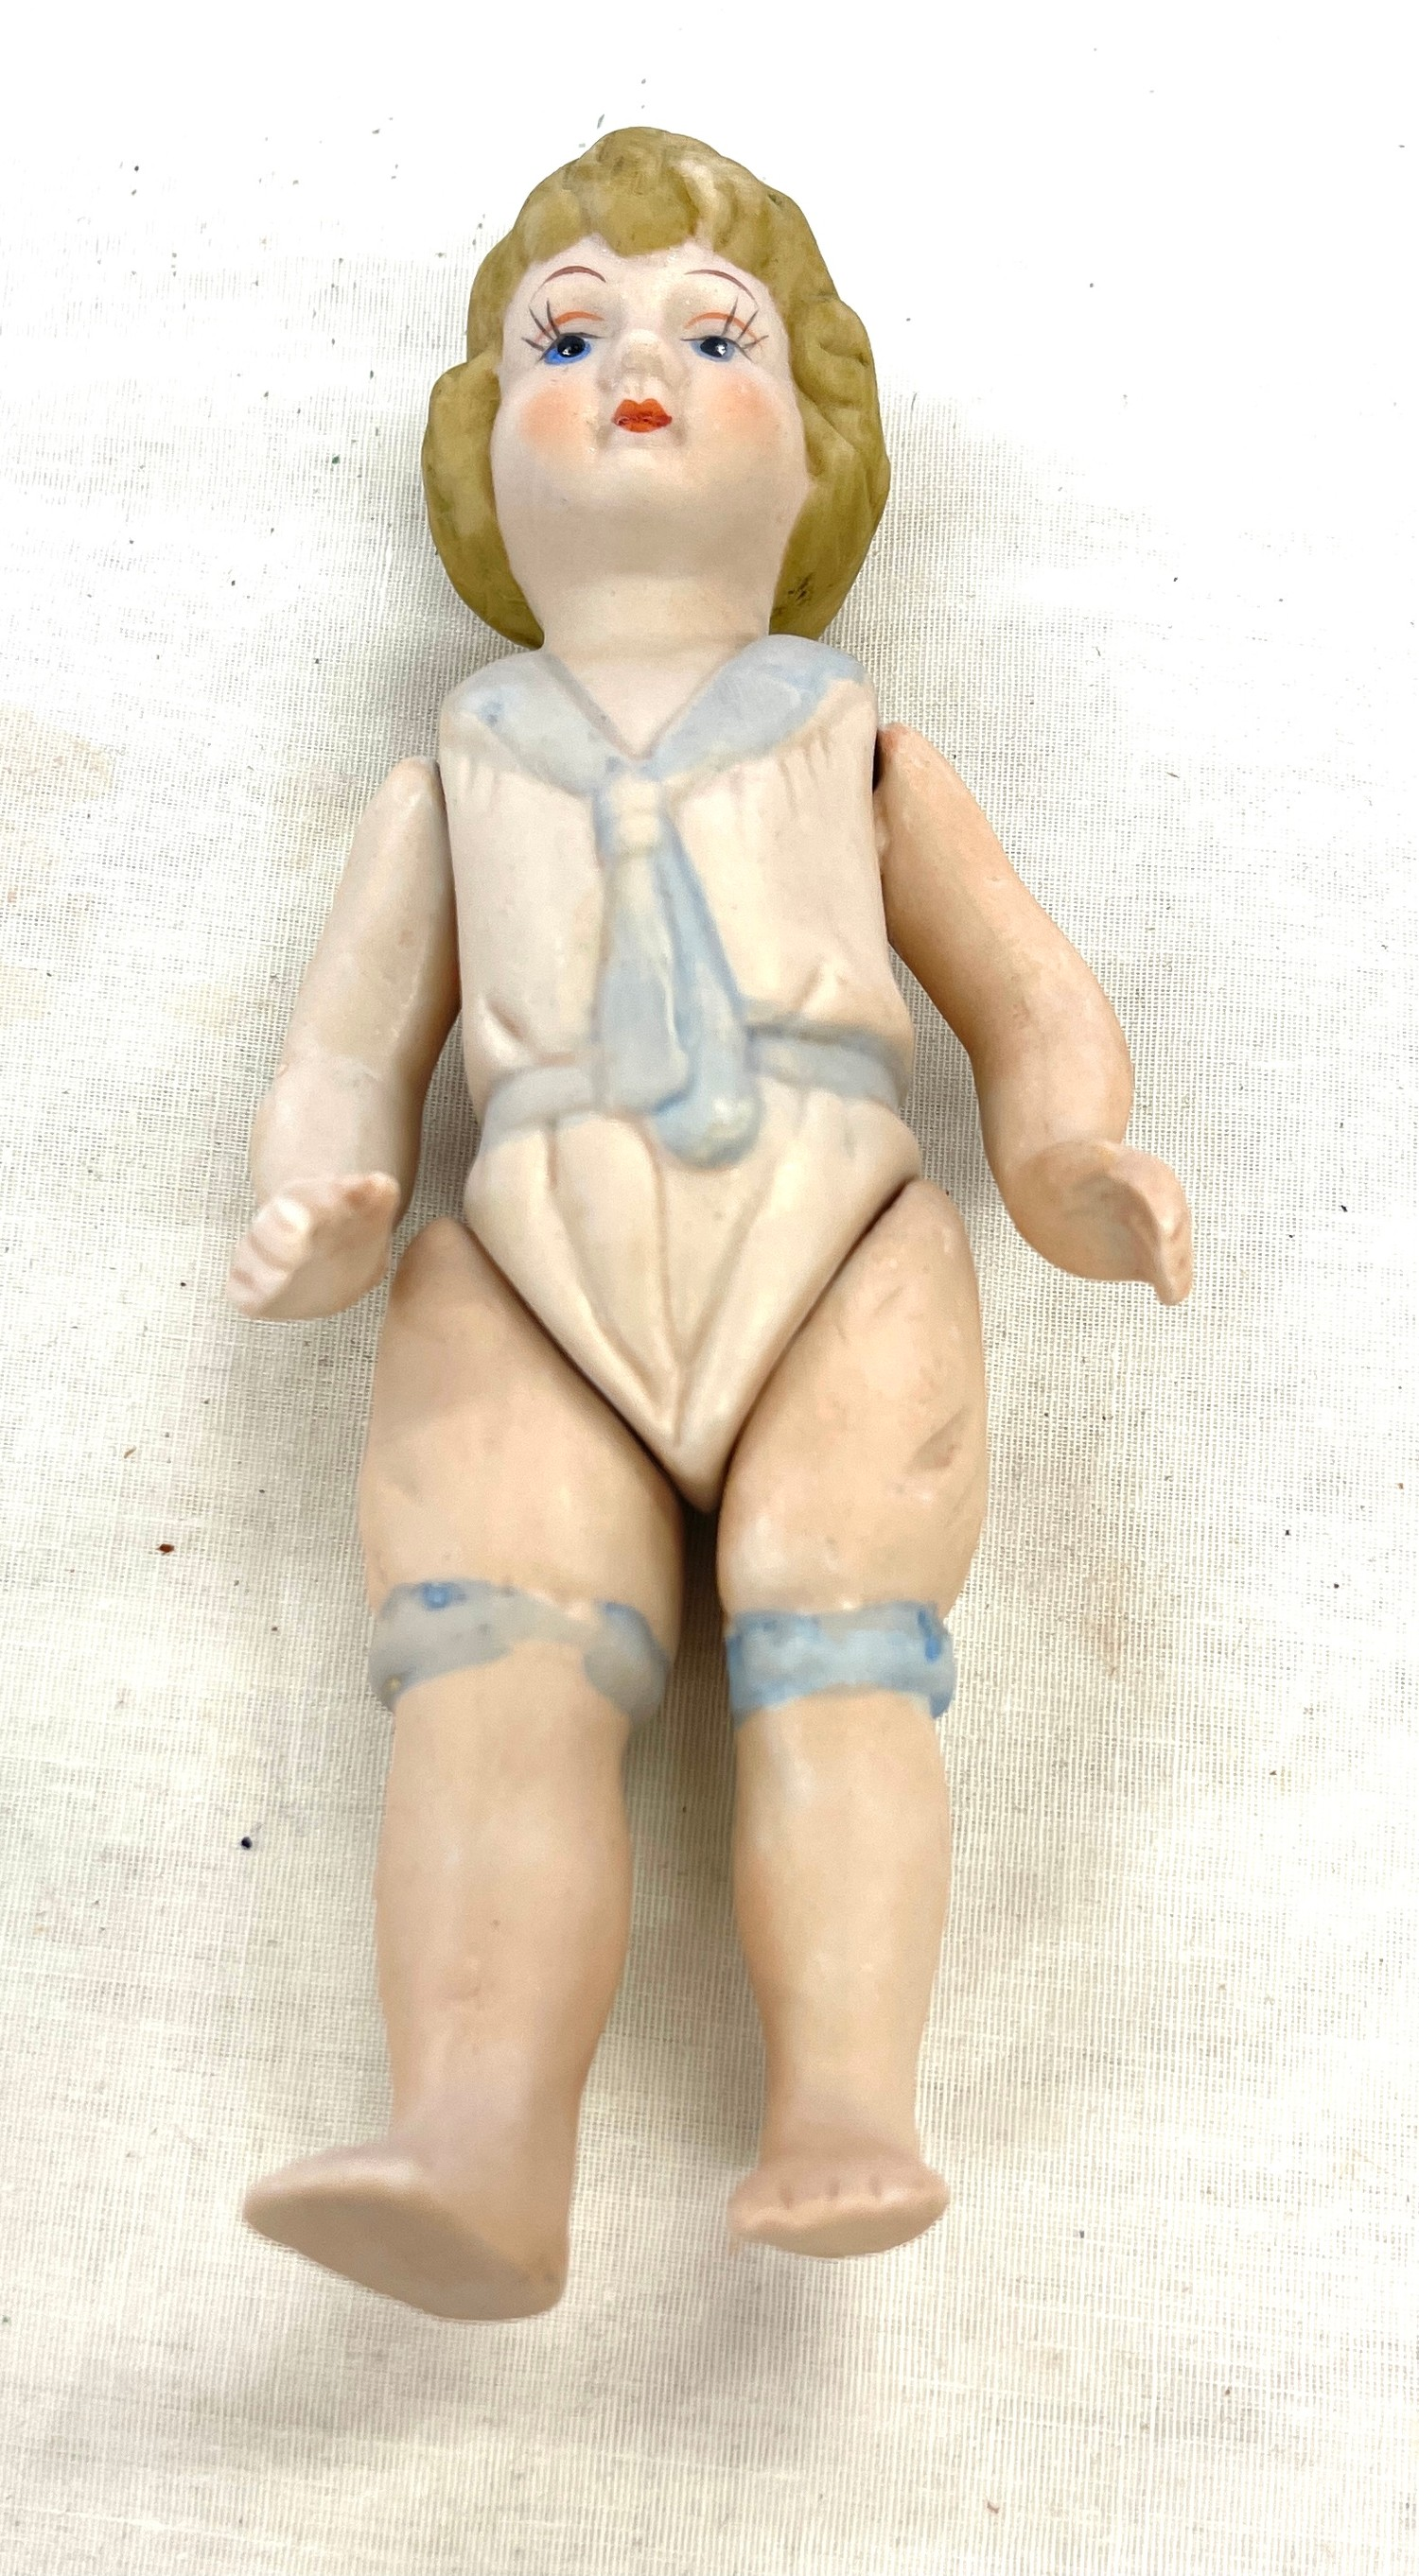 Vintage porcelain jointed china doll, approximate height: 17cm